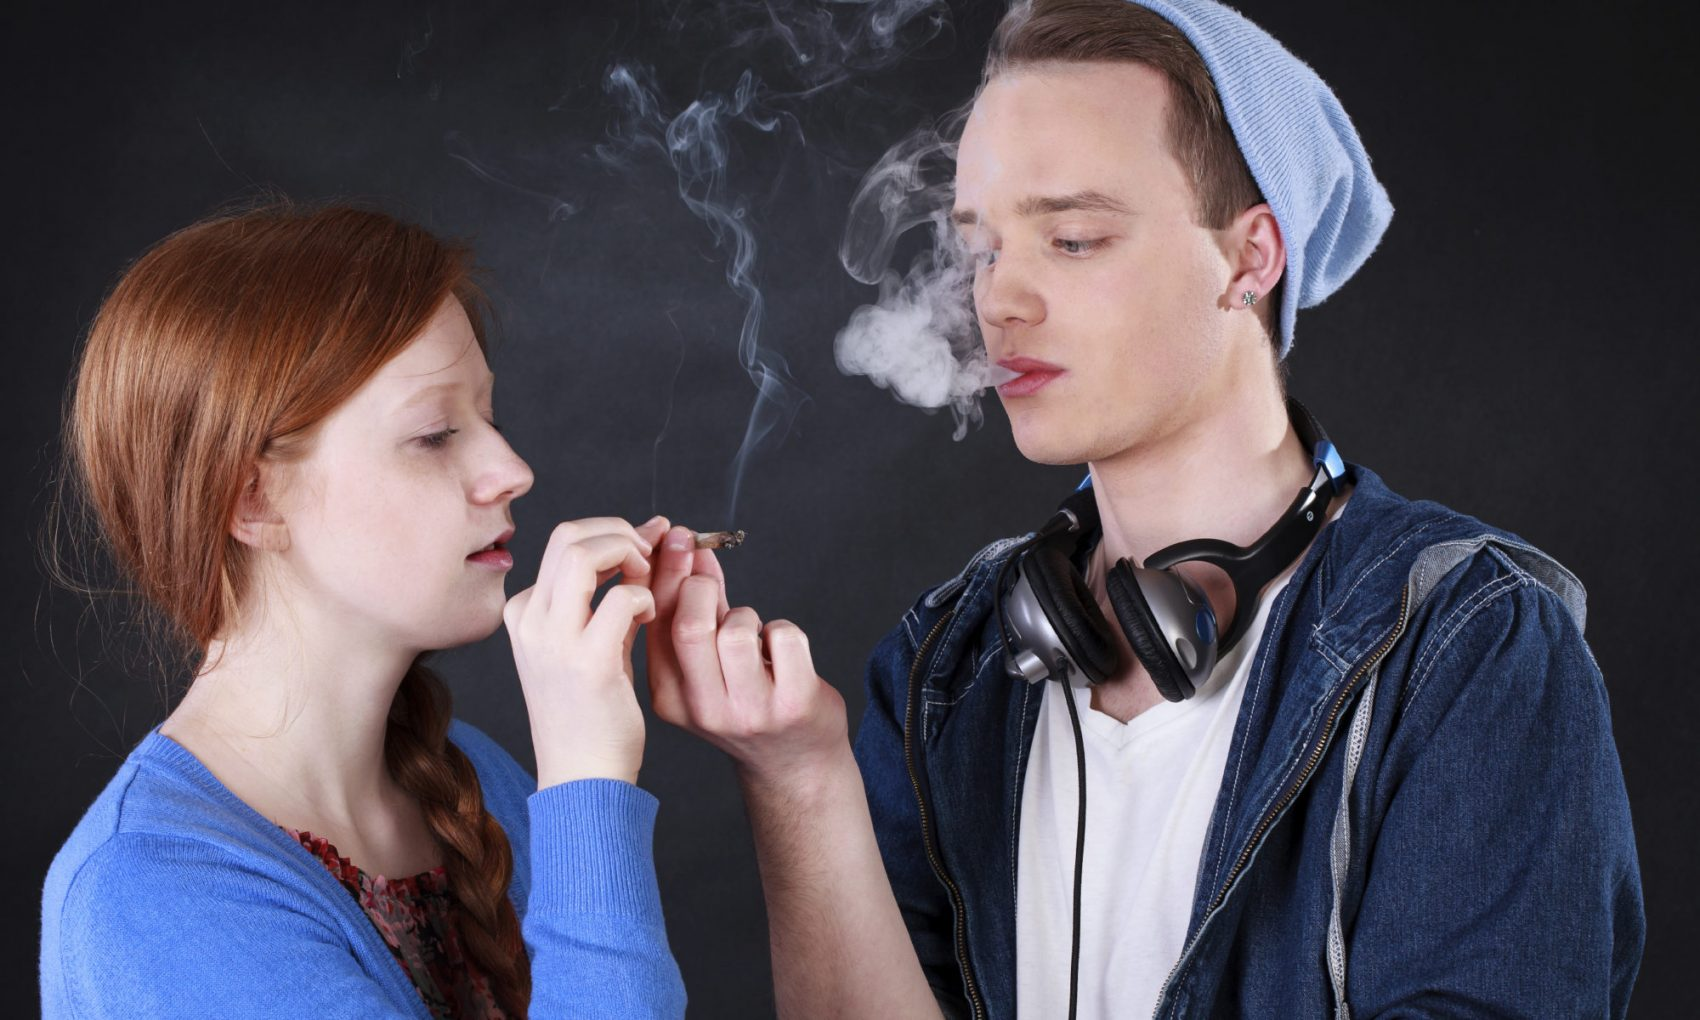 Addicted to Weed: Teens with Medical Marijuana Cards